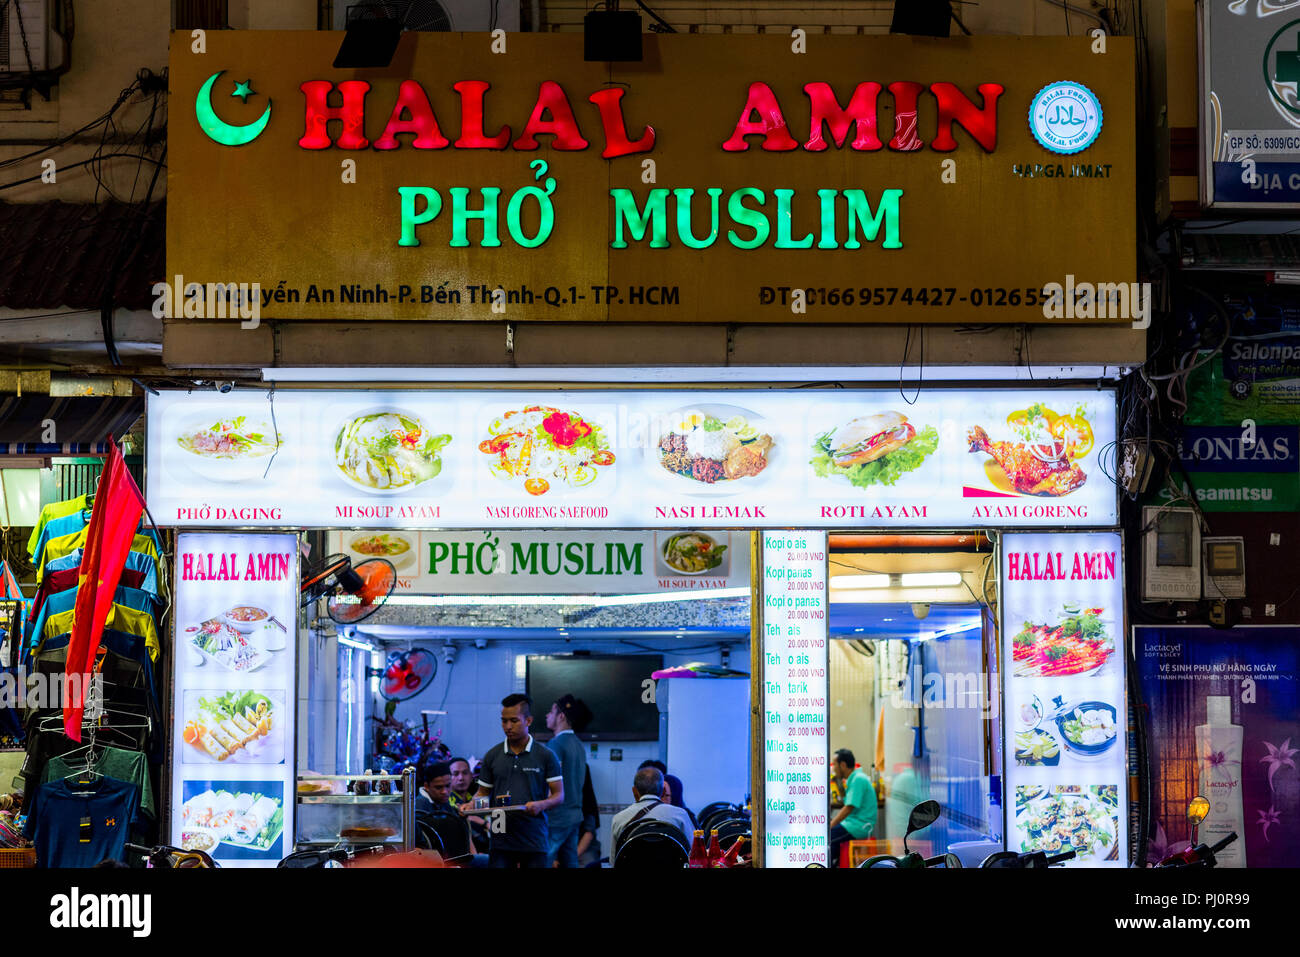 Ho Chi Minh Vietnam April 27 2018 Halal Food Restaurant Halal Amin Pho Muslim With The Sign Announces A Halal Version Of Soup Pho Stock Photo Alamy